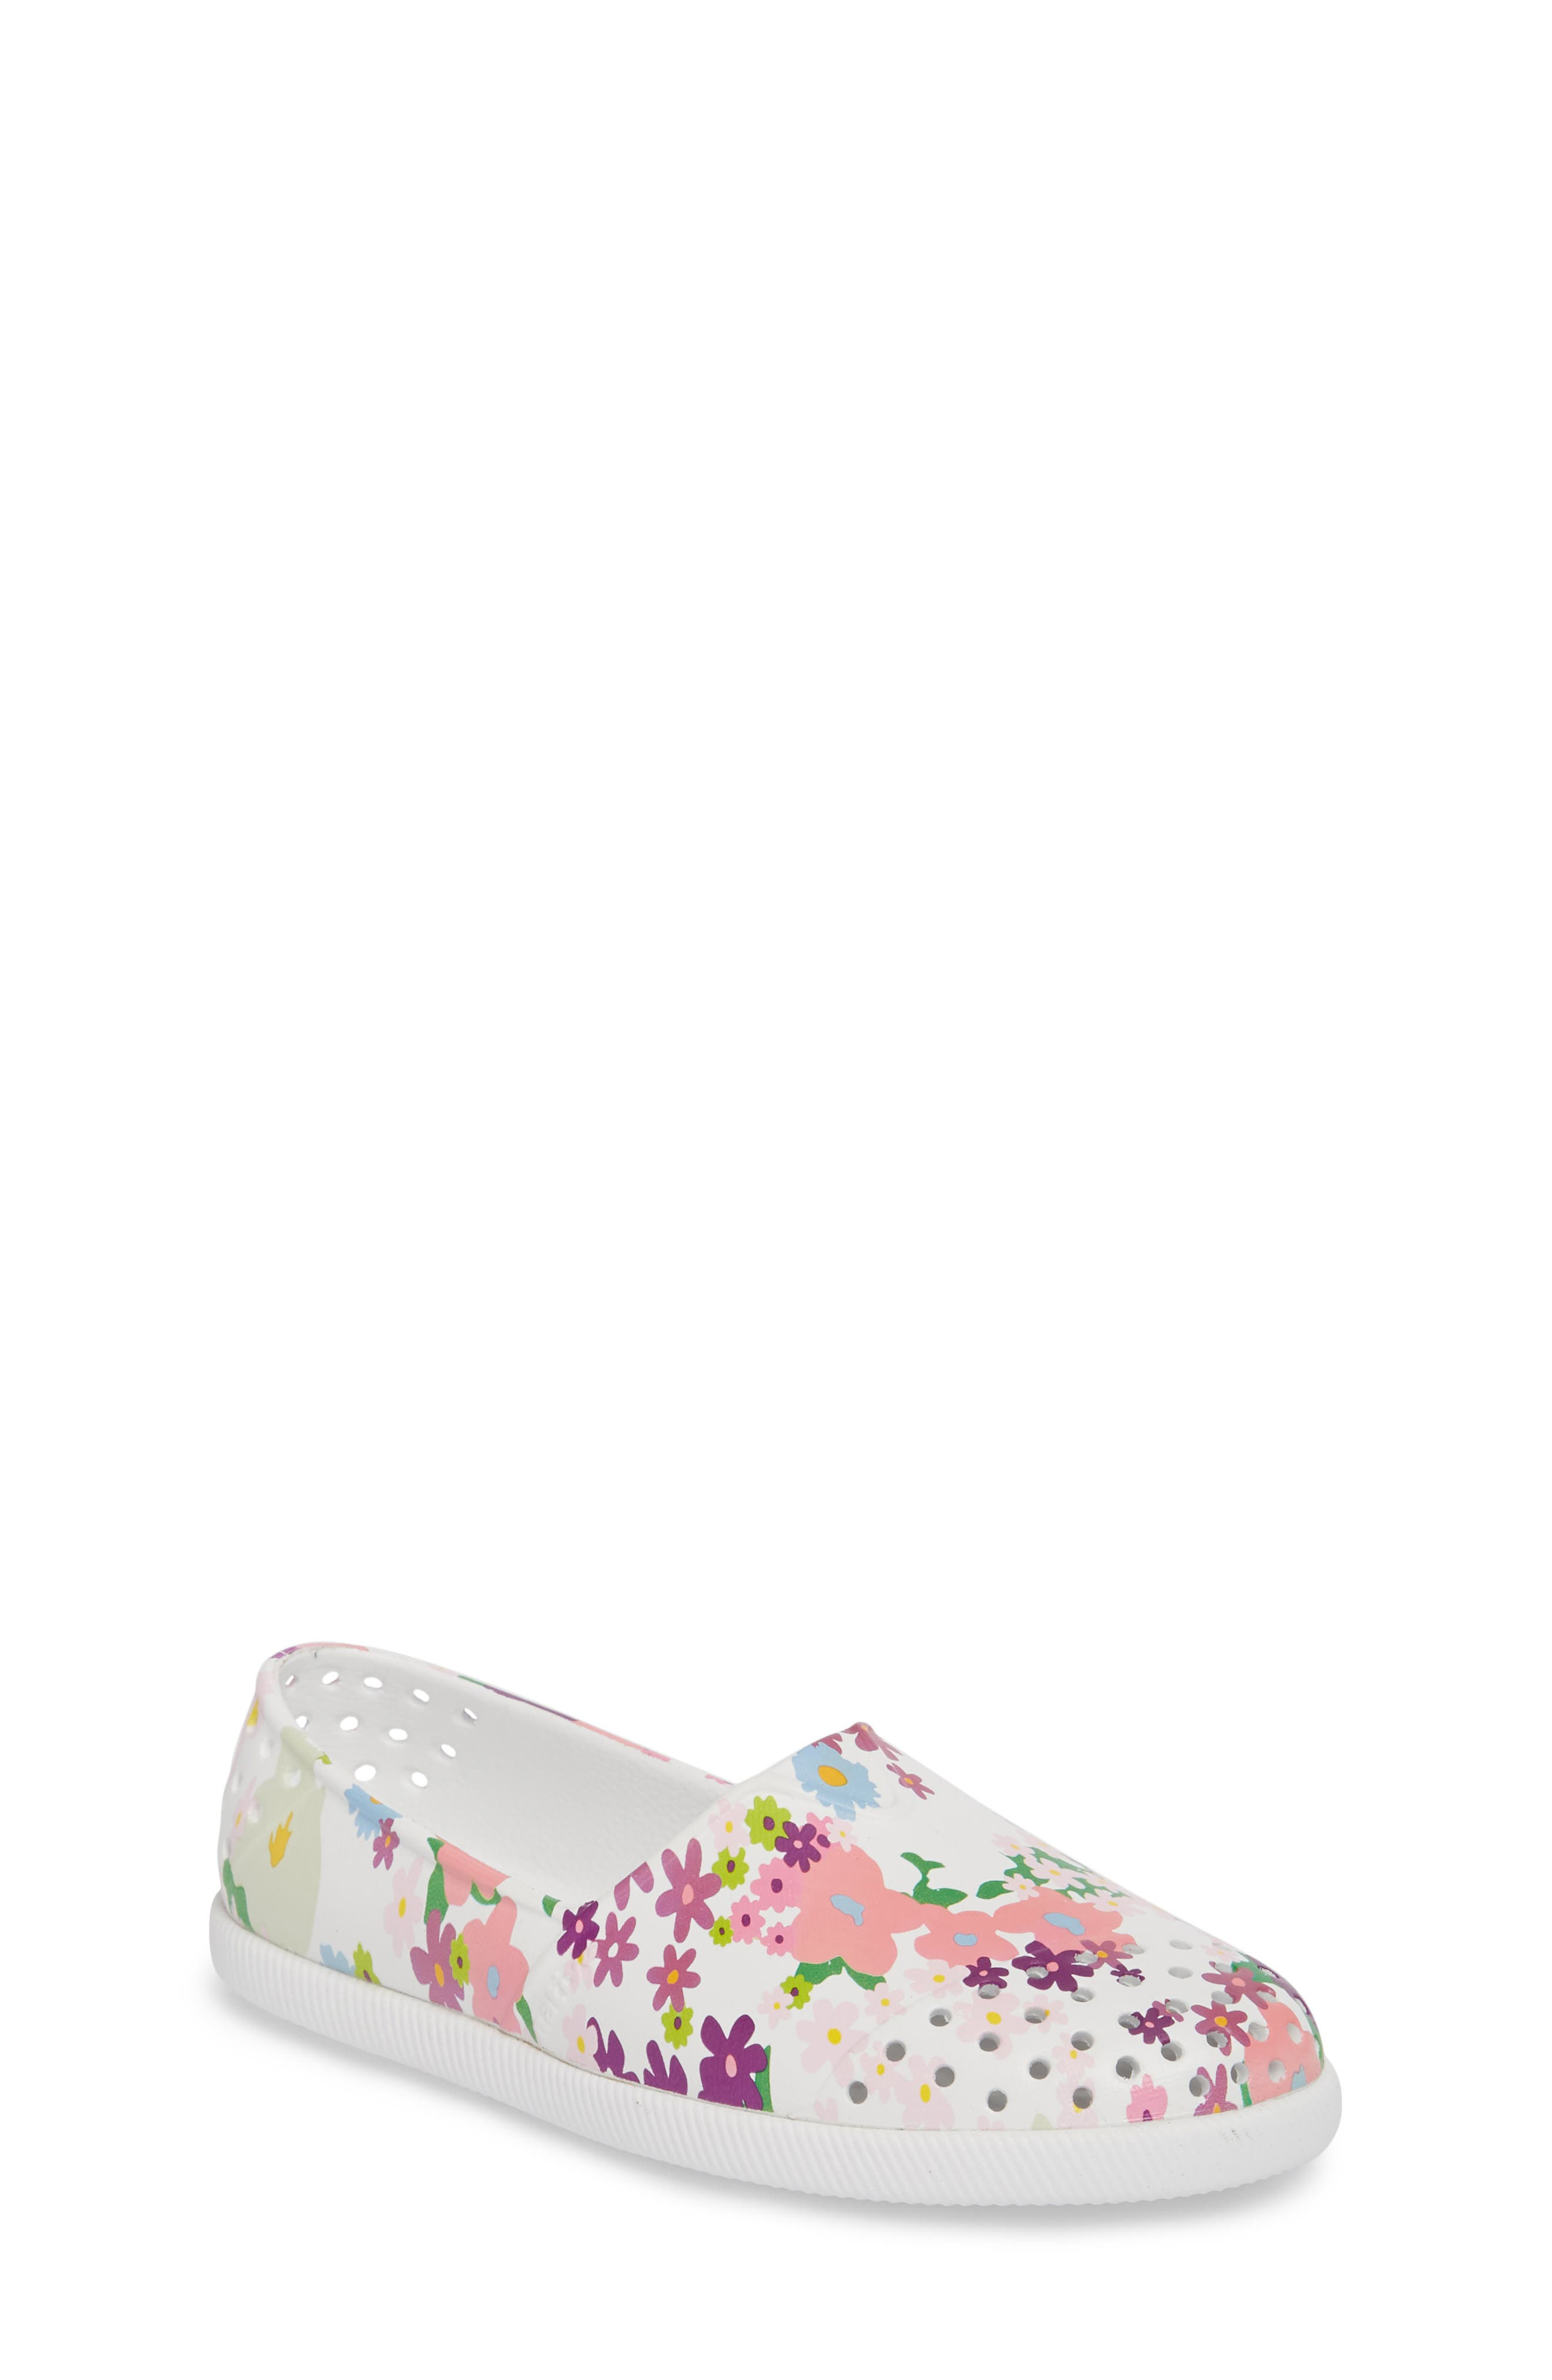 NATIVE SHOES,                             Verona Perforated Slip-On,                             Main thumbnail 1, color,                             135